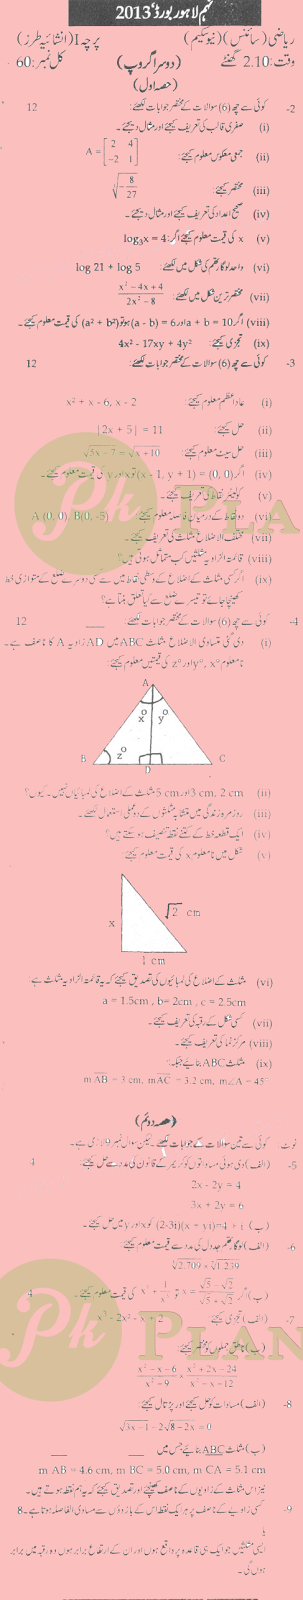 Past Papers of 9th Class Lahore Board 2013 Mathematics